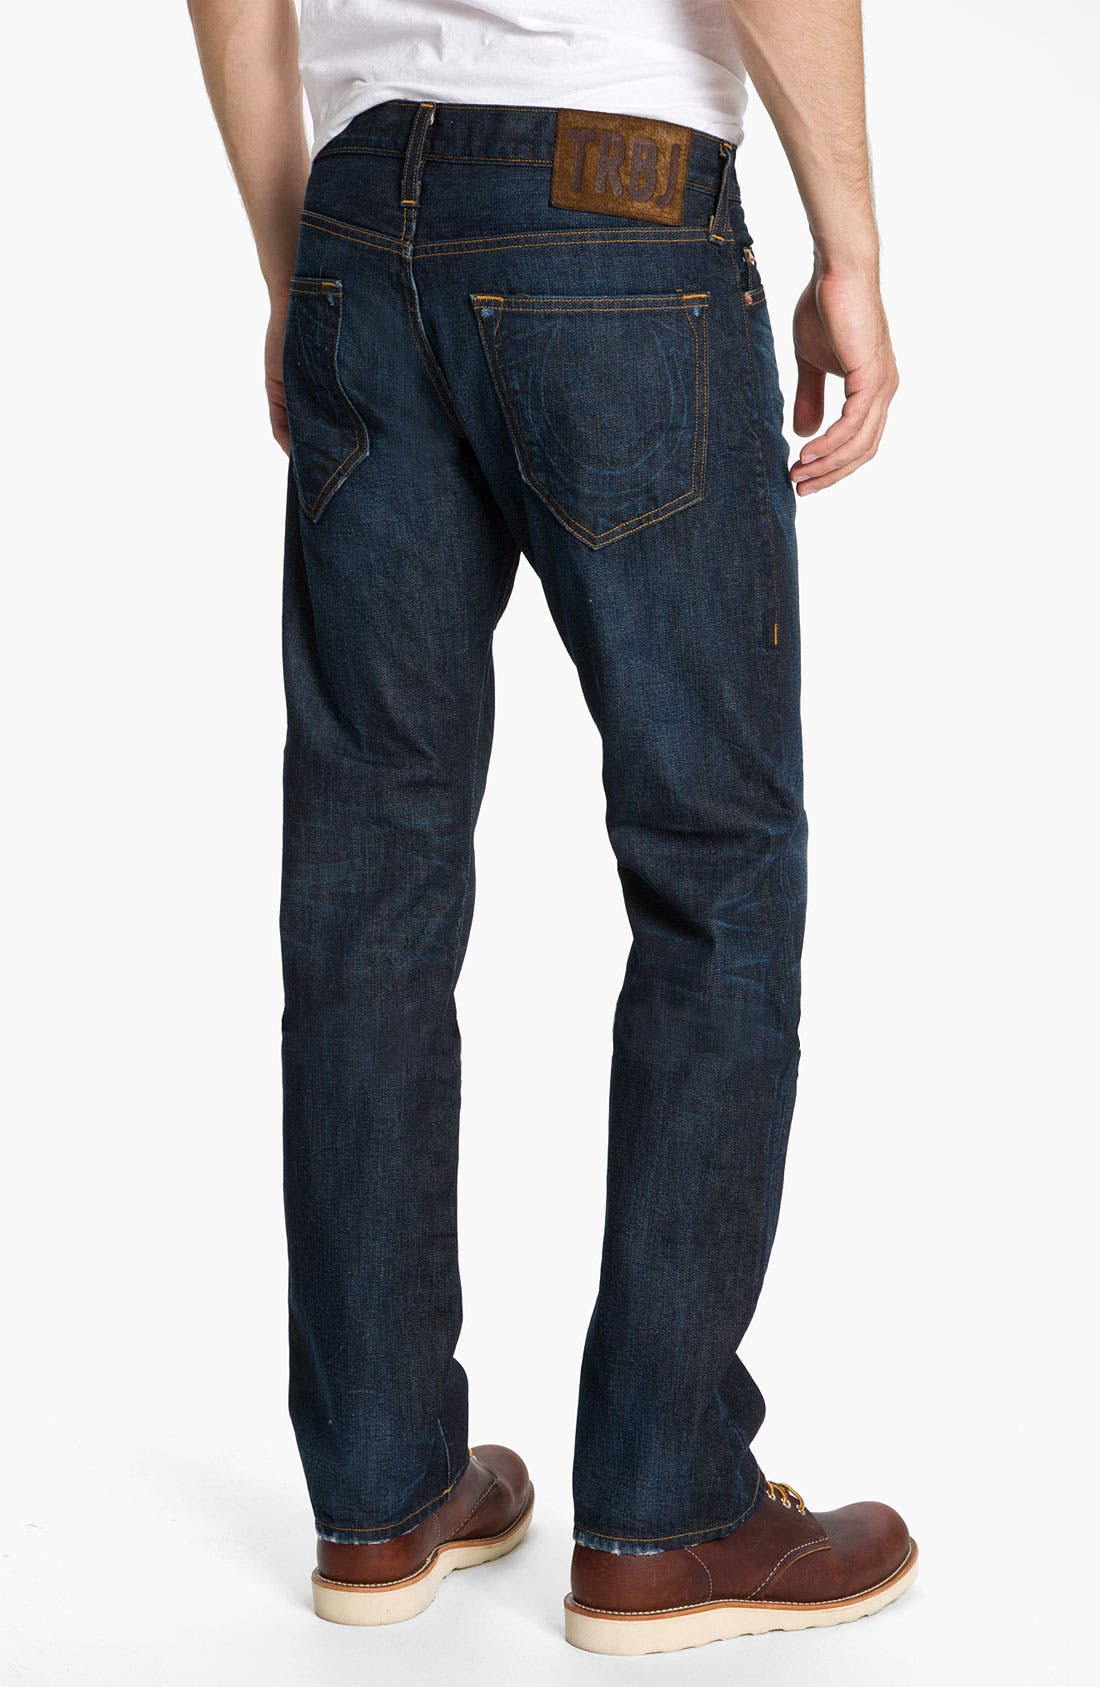 Alternate Image 1 Selected - True Religion Brand Jeans 'Bobby 1971' Straight Leg Jeans (Ransom)